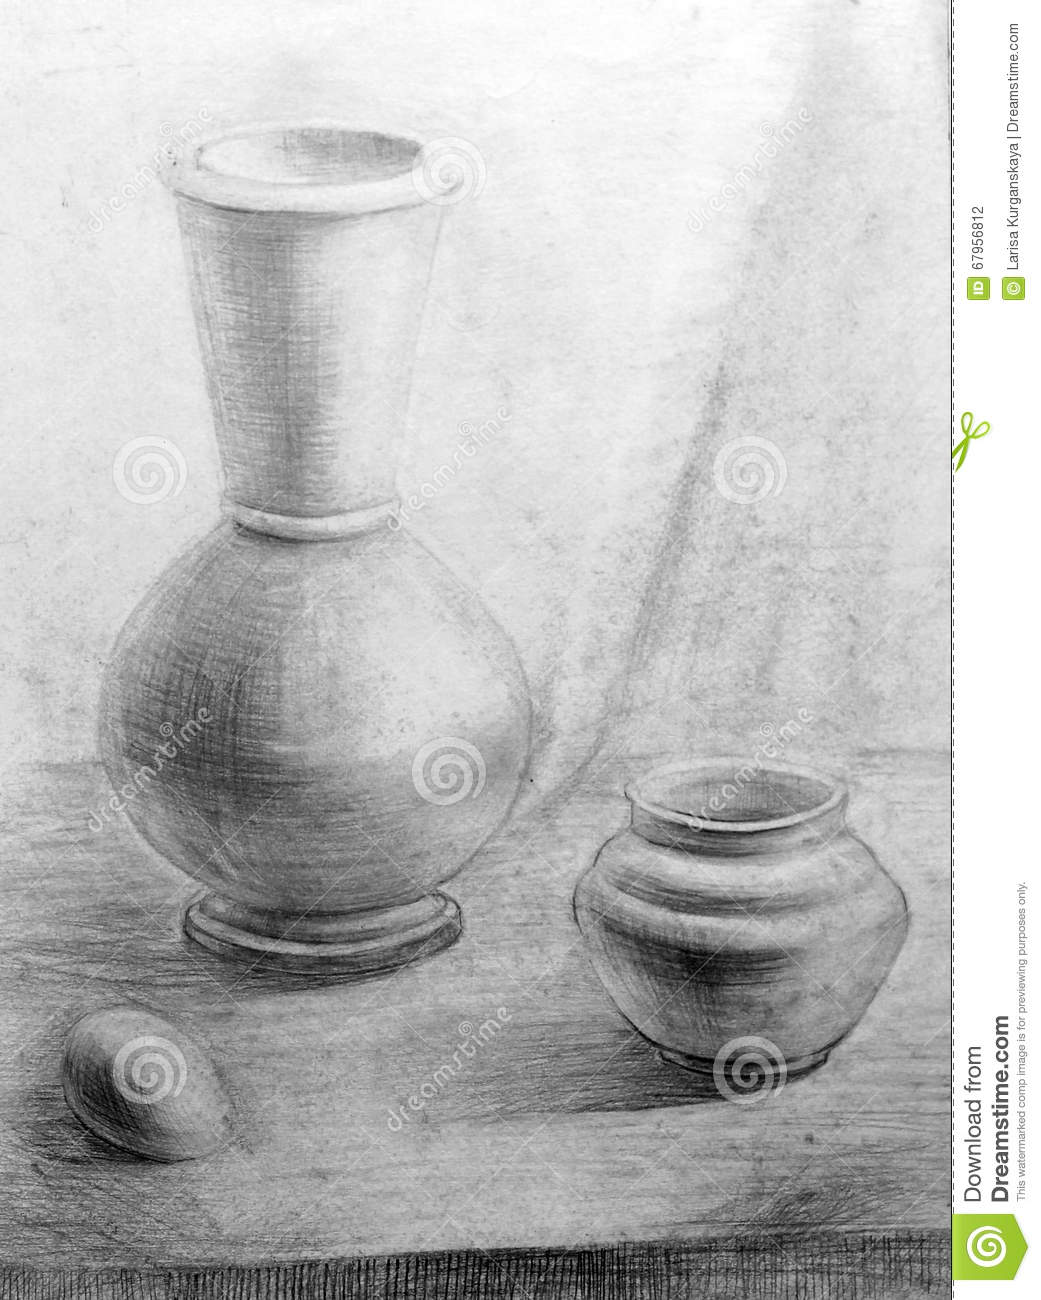 Pencil Drawing Still Life Nature Morte Stock Illustration Illustration Of Pencil Nature 67956812